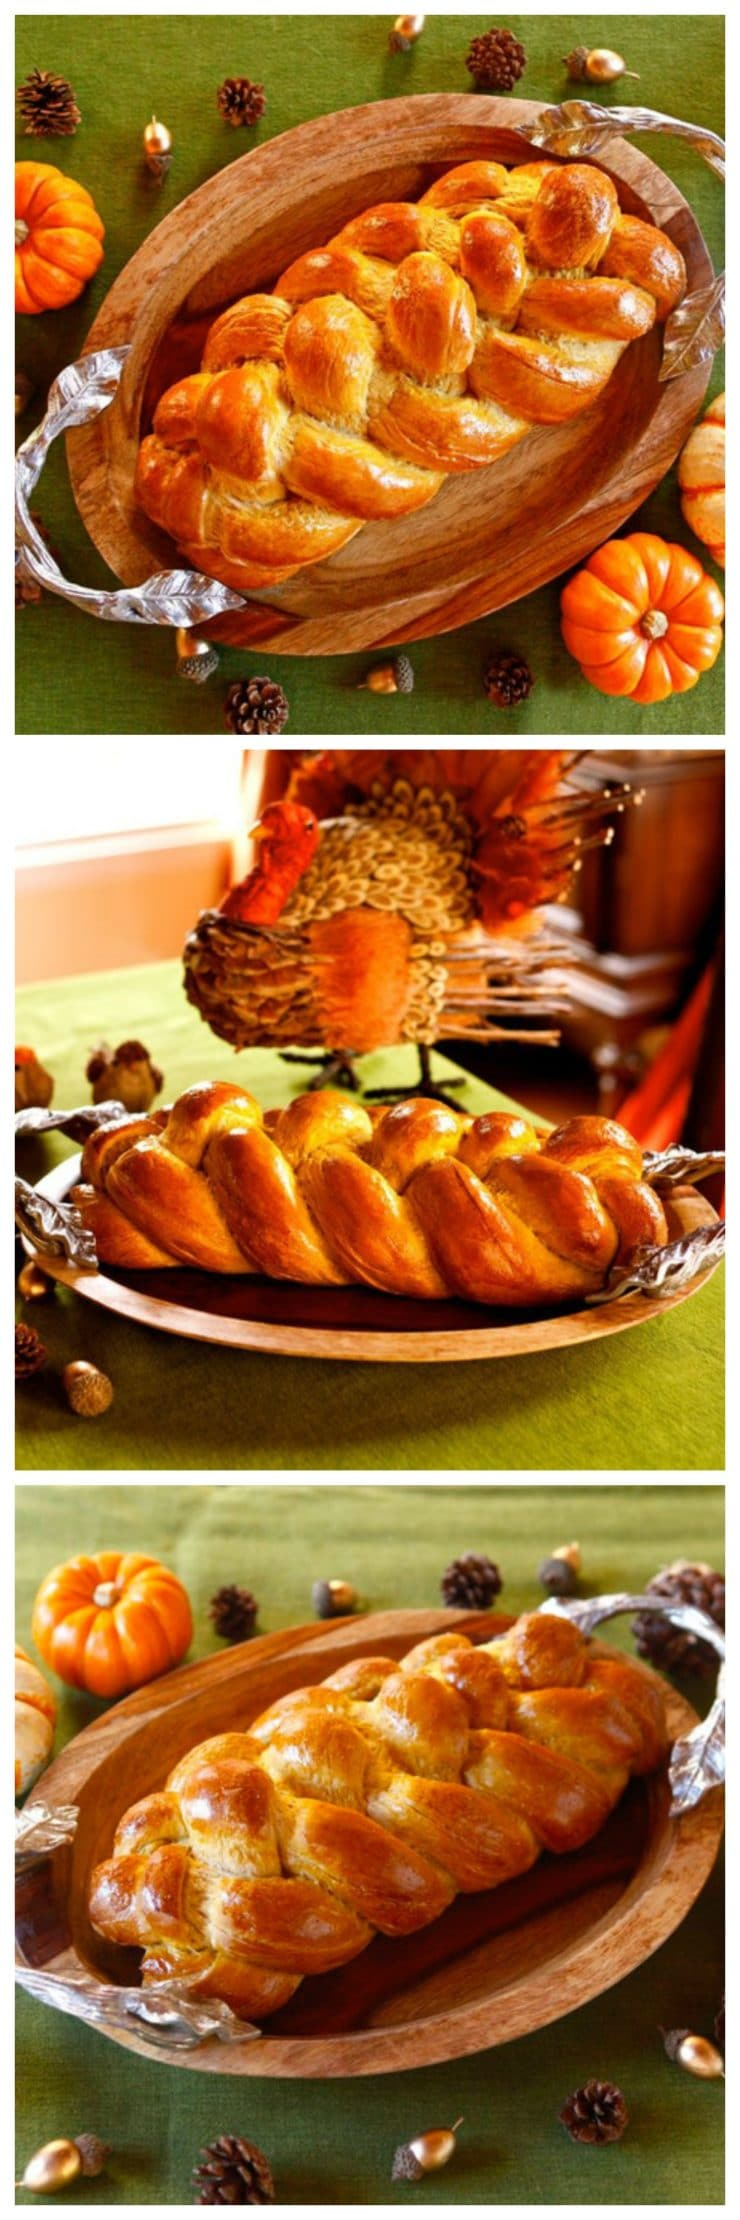 Pumpkin Challah - Combine two holiday traditions for one delicious, beautiful braided treat! Perfect centerpiece for an autumn holiday table. #Thanksgiving #Sukkot #Shabbat #challah